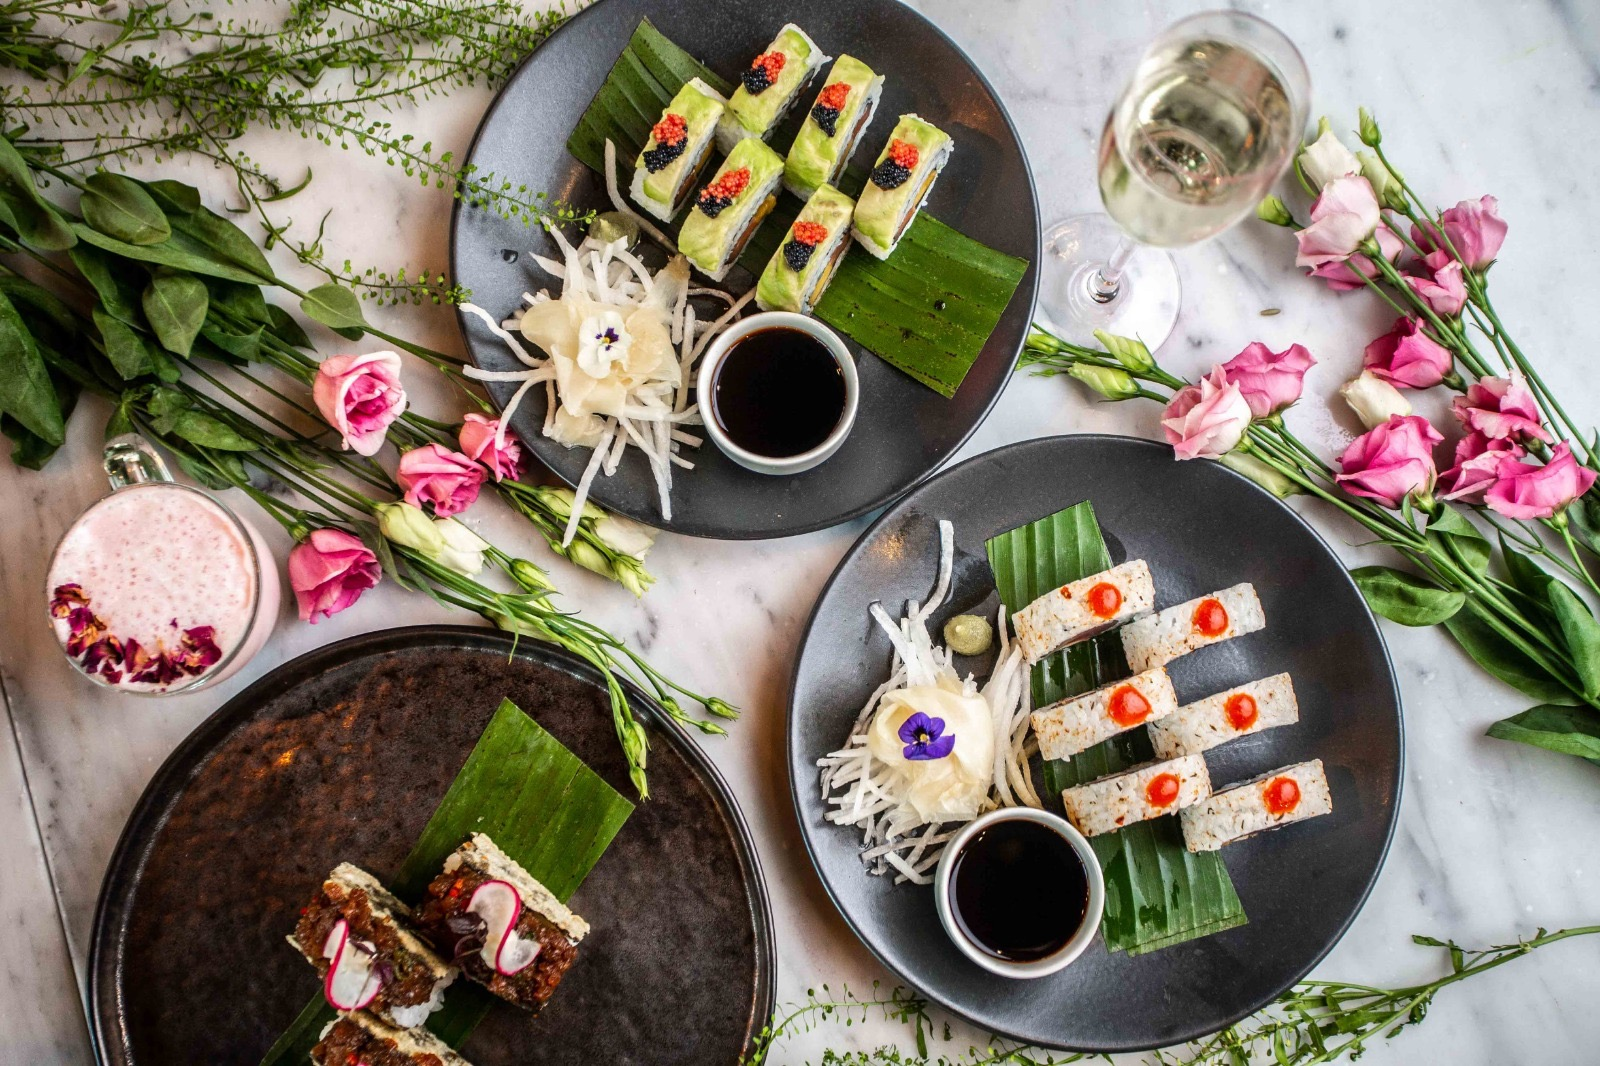 Menagerie Manchester - There's a massive range of dishes with everything from steaks to sushi